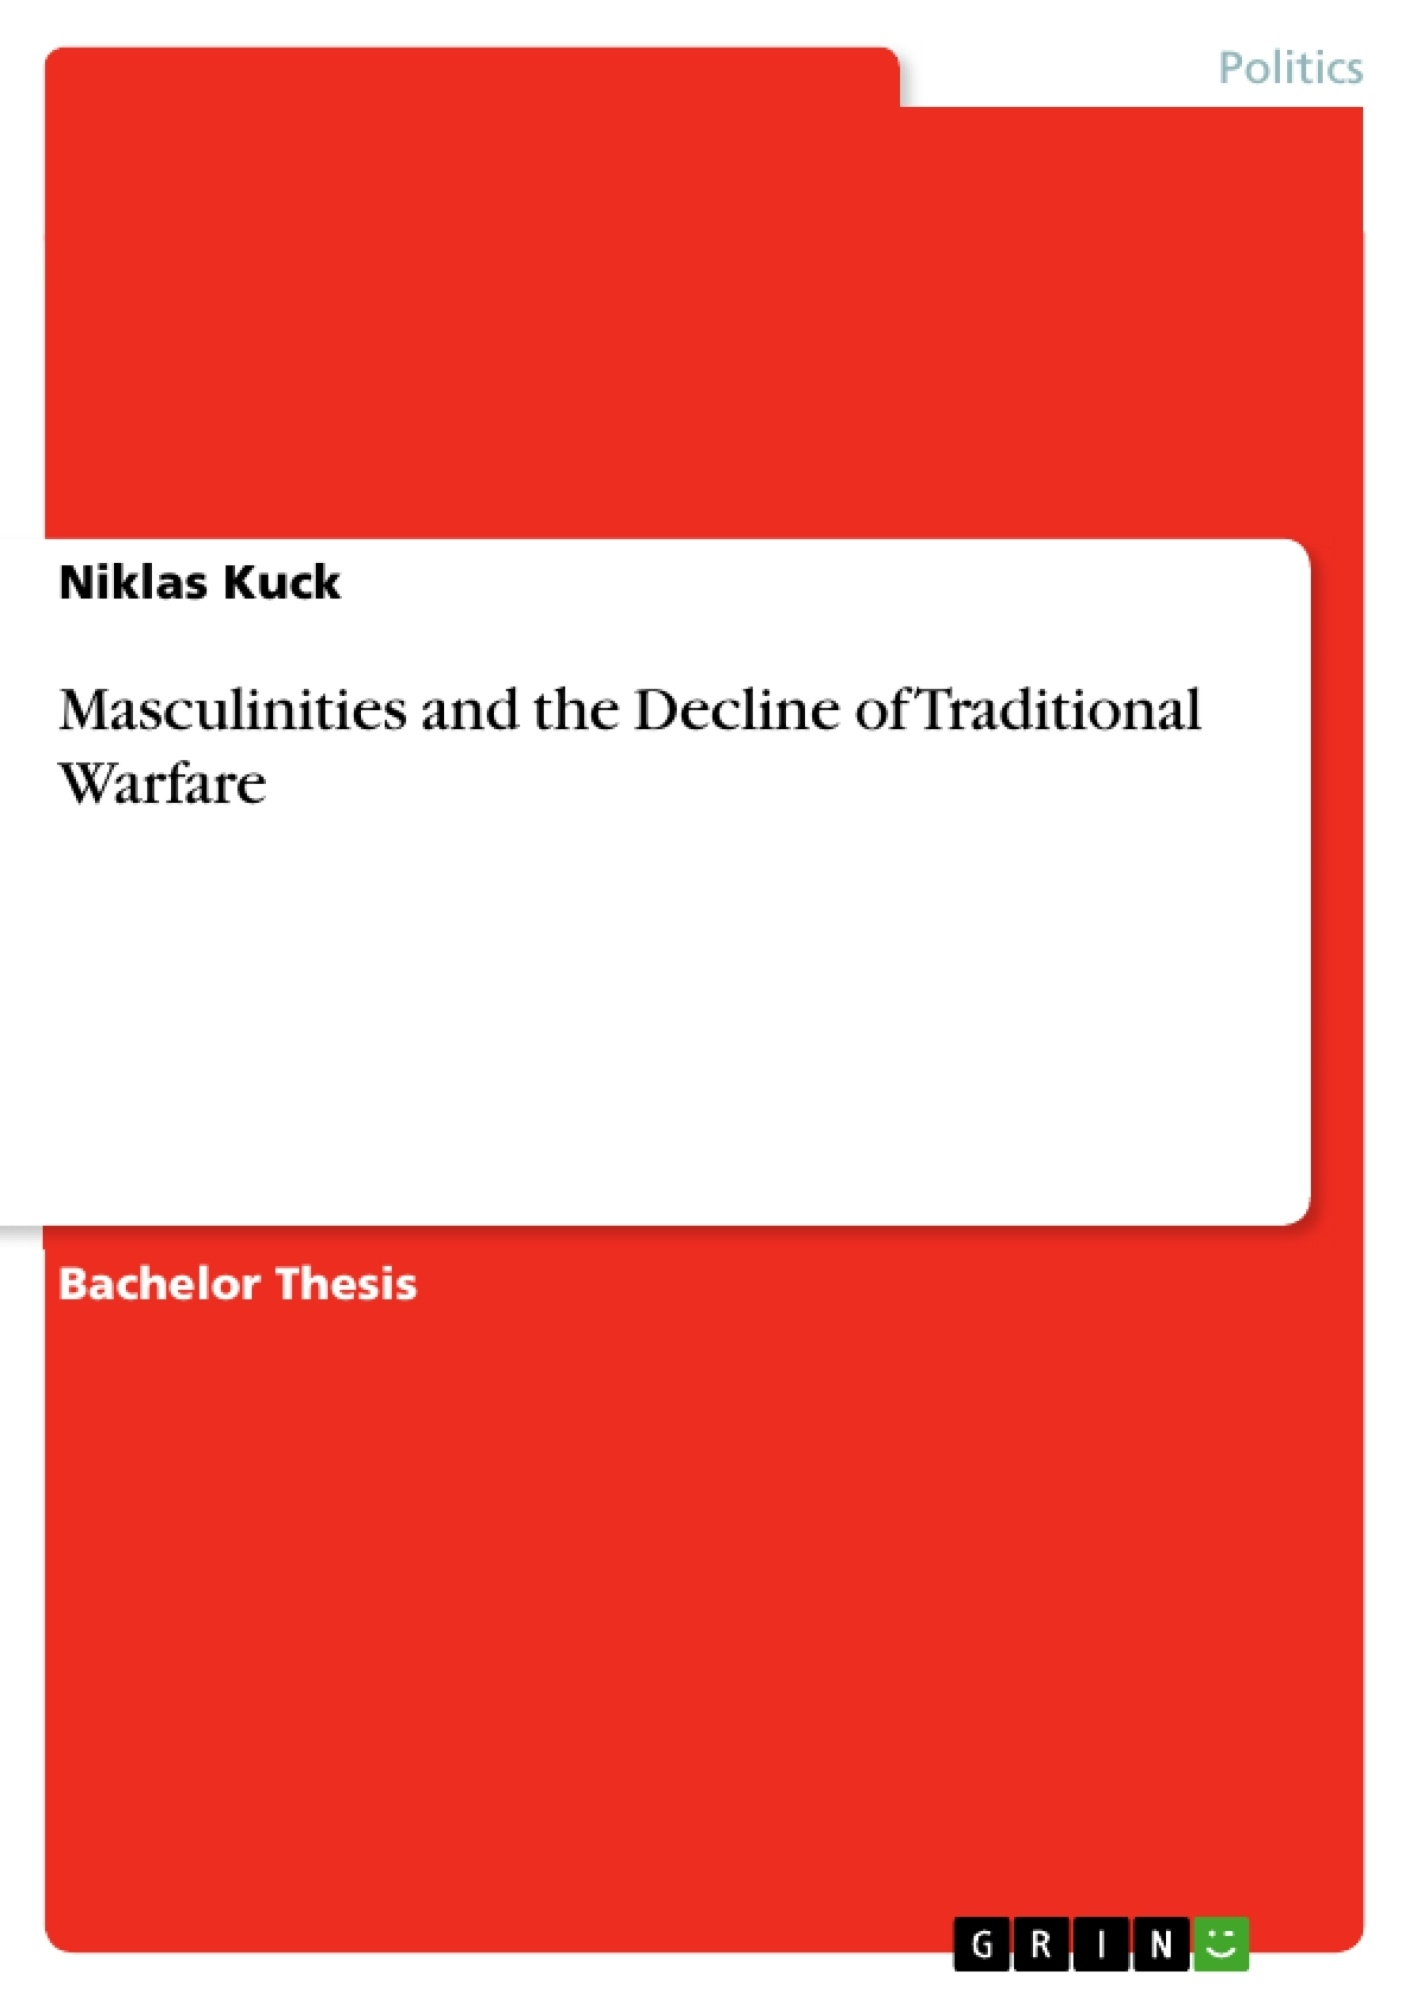 Title: Masculinities and the Decline of Traditional Warfare